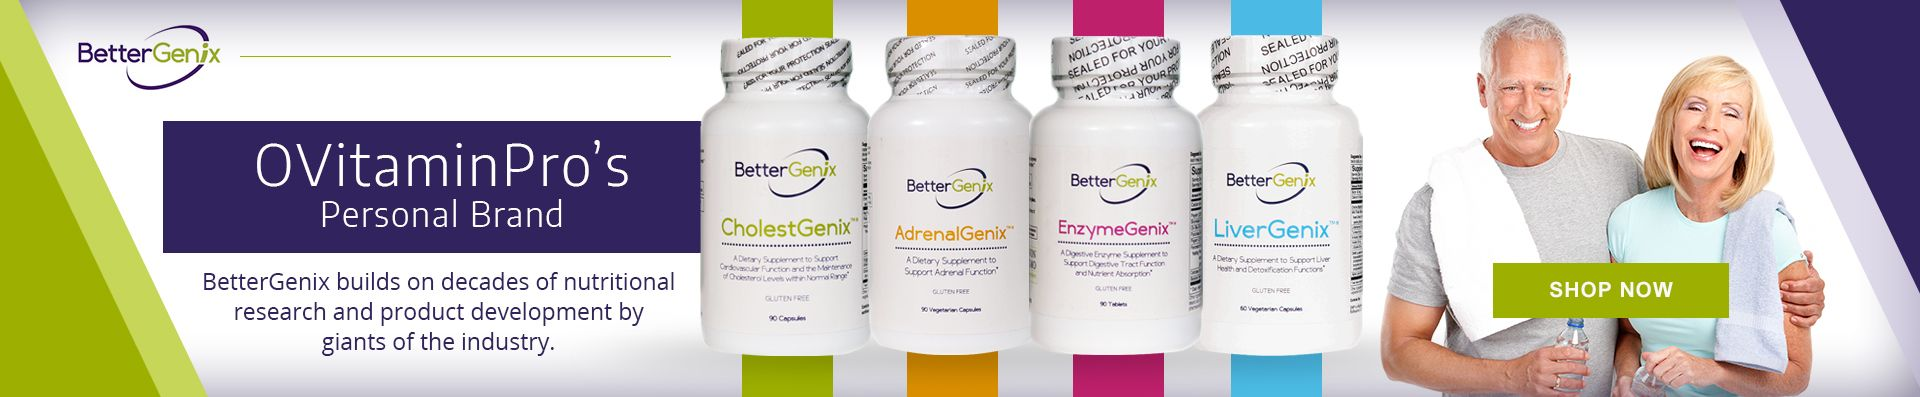 Escape the Feeling of Depression and Hopelessness - Get Your Life Back With Healthy Nutritional Support For Your Brain!